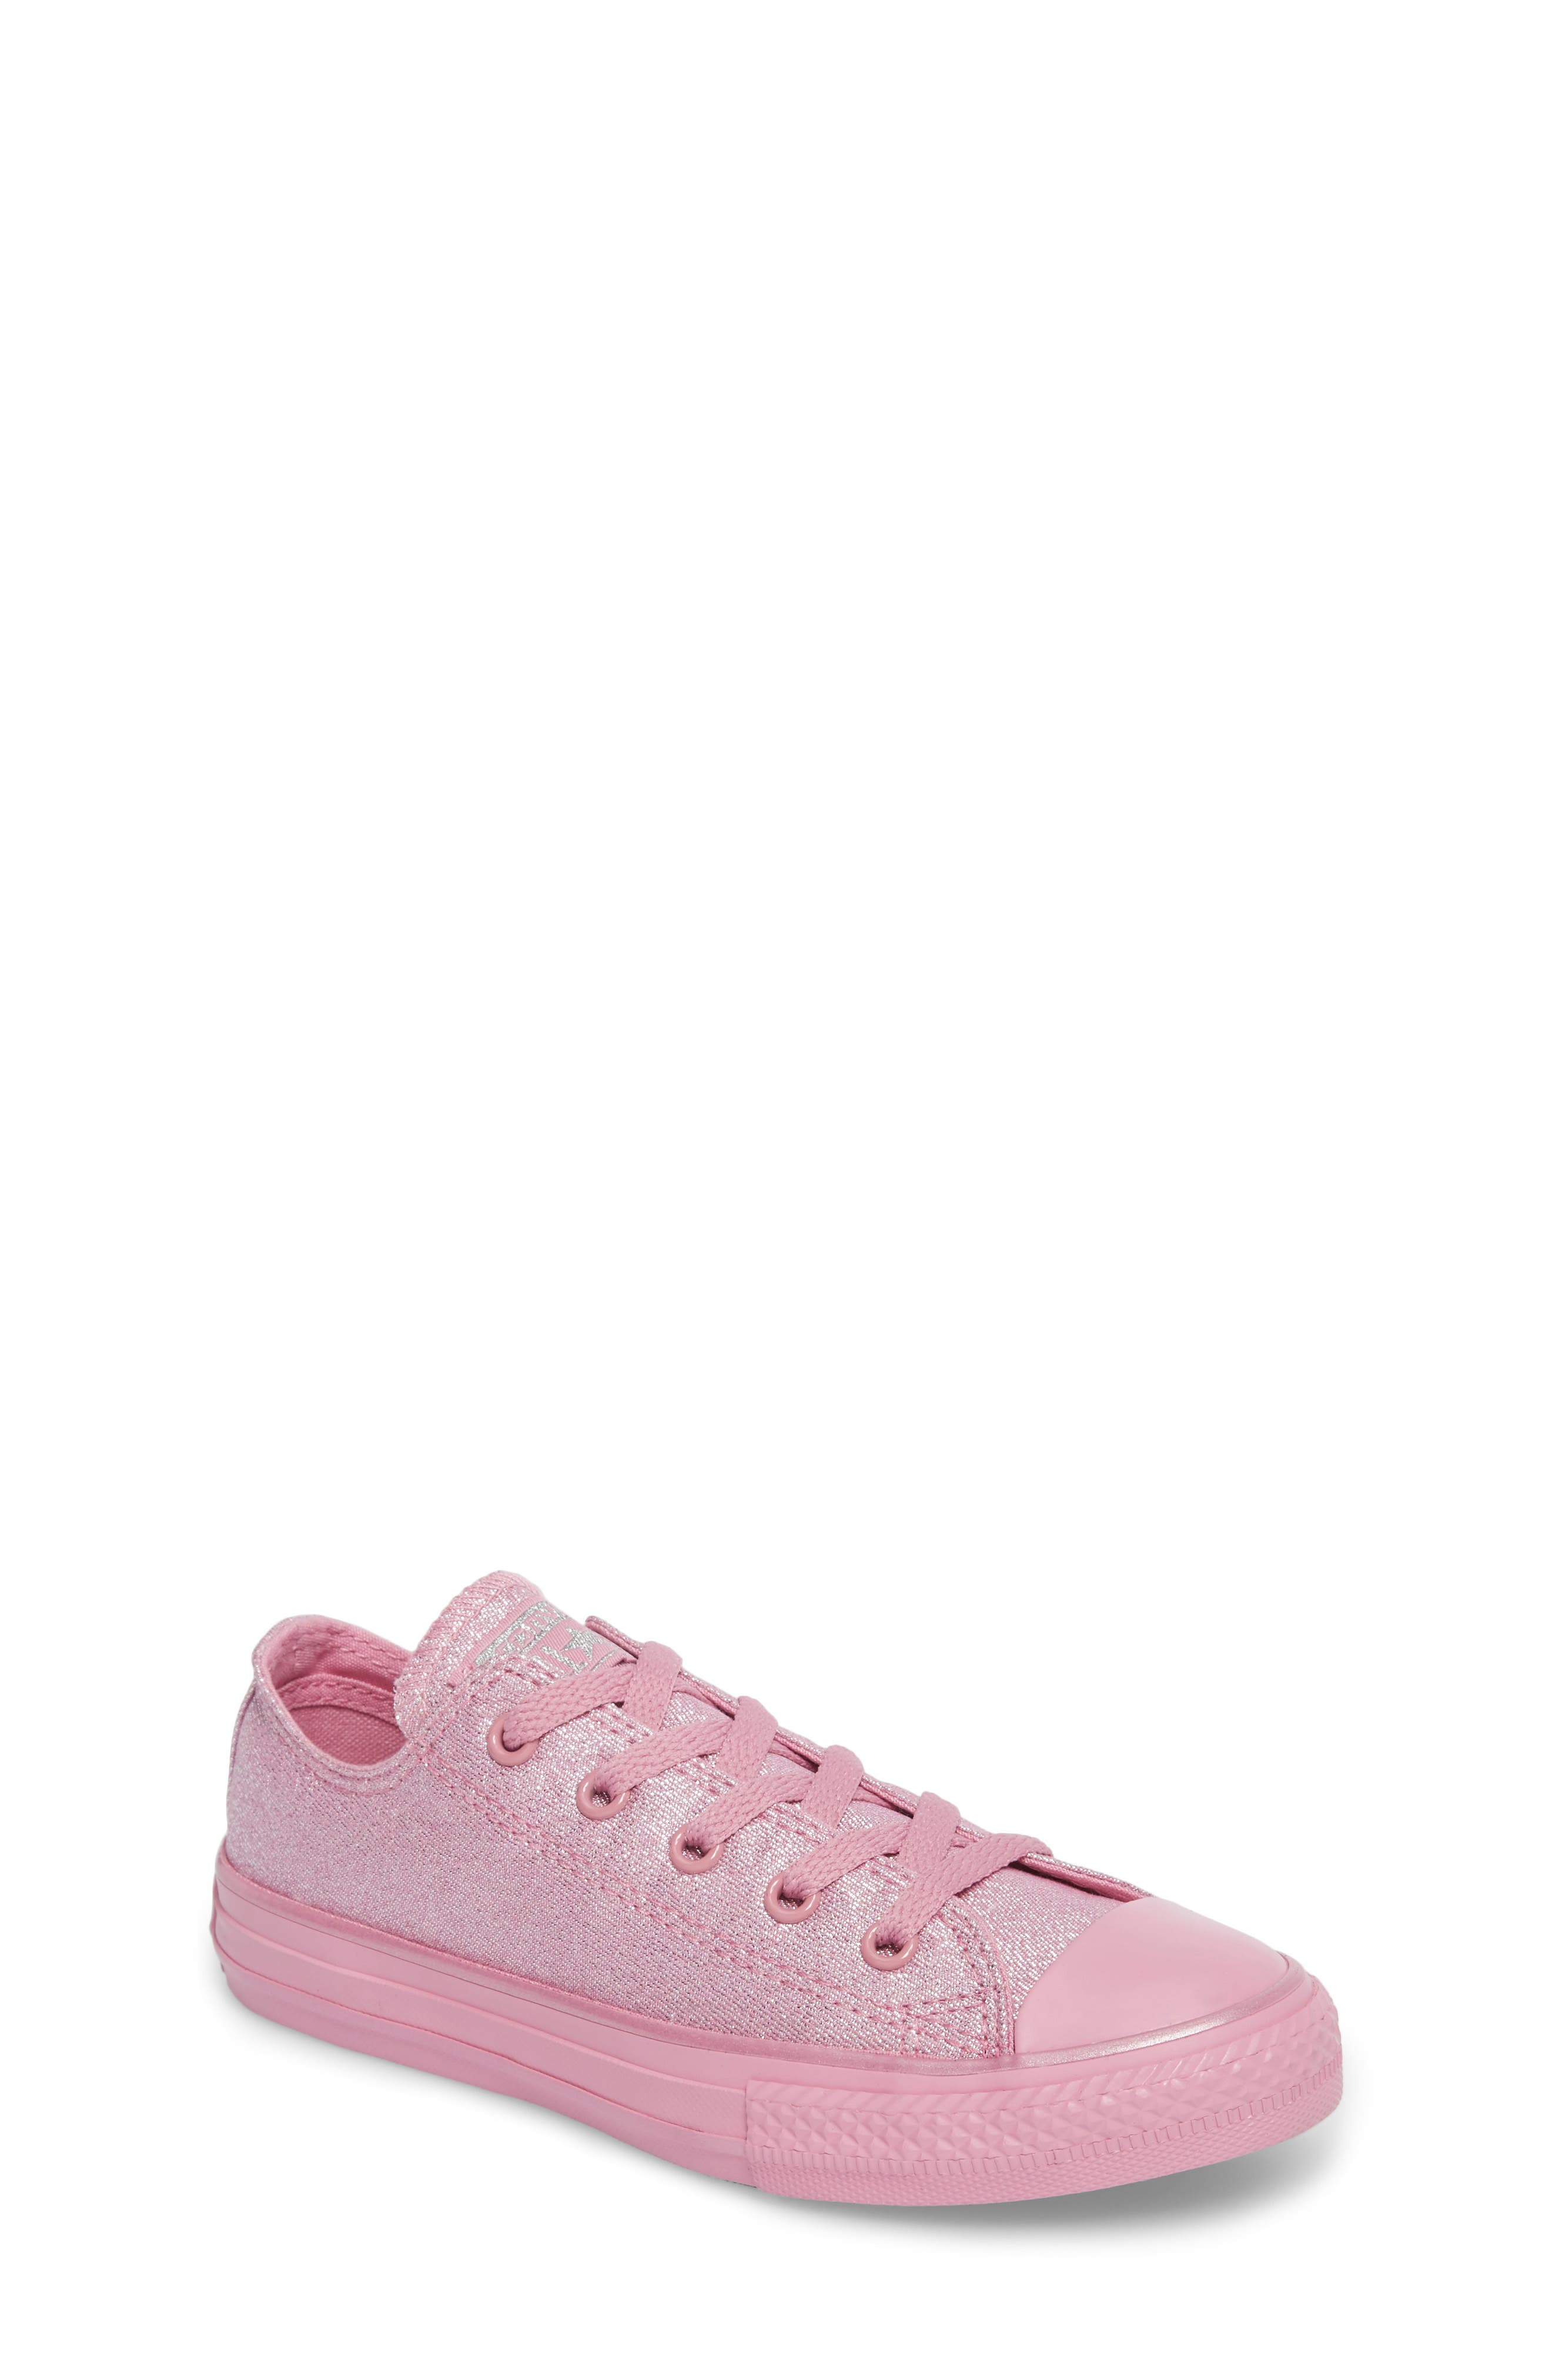 Alternate Image 1 Selected - Converse All Star® Mono Shine Low Top Sneaker (Toddler, Little Kid & Big Kid)